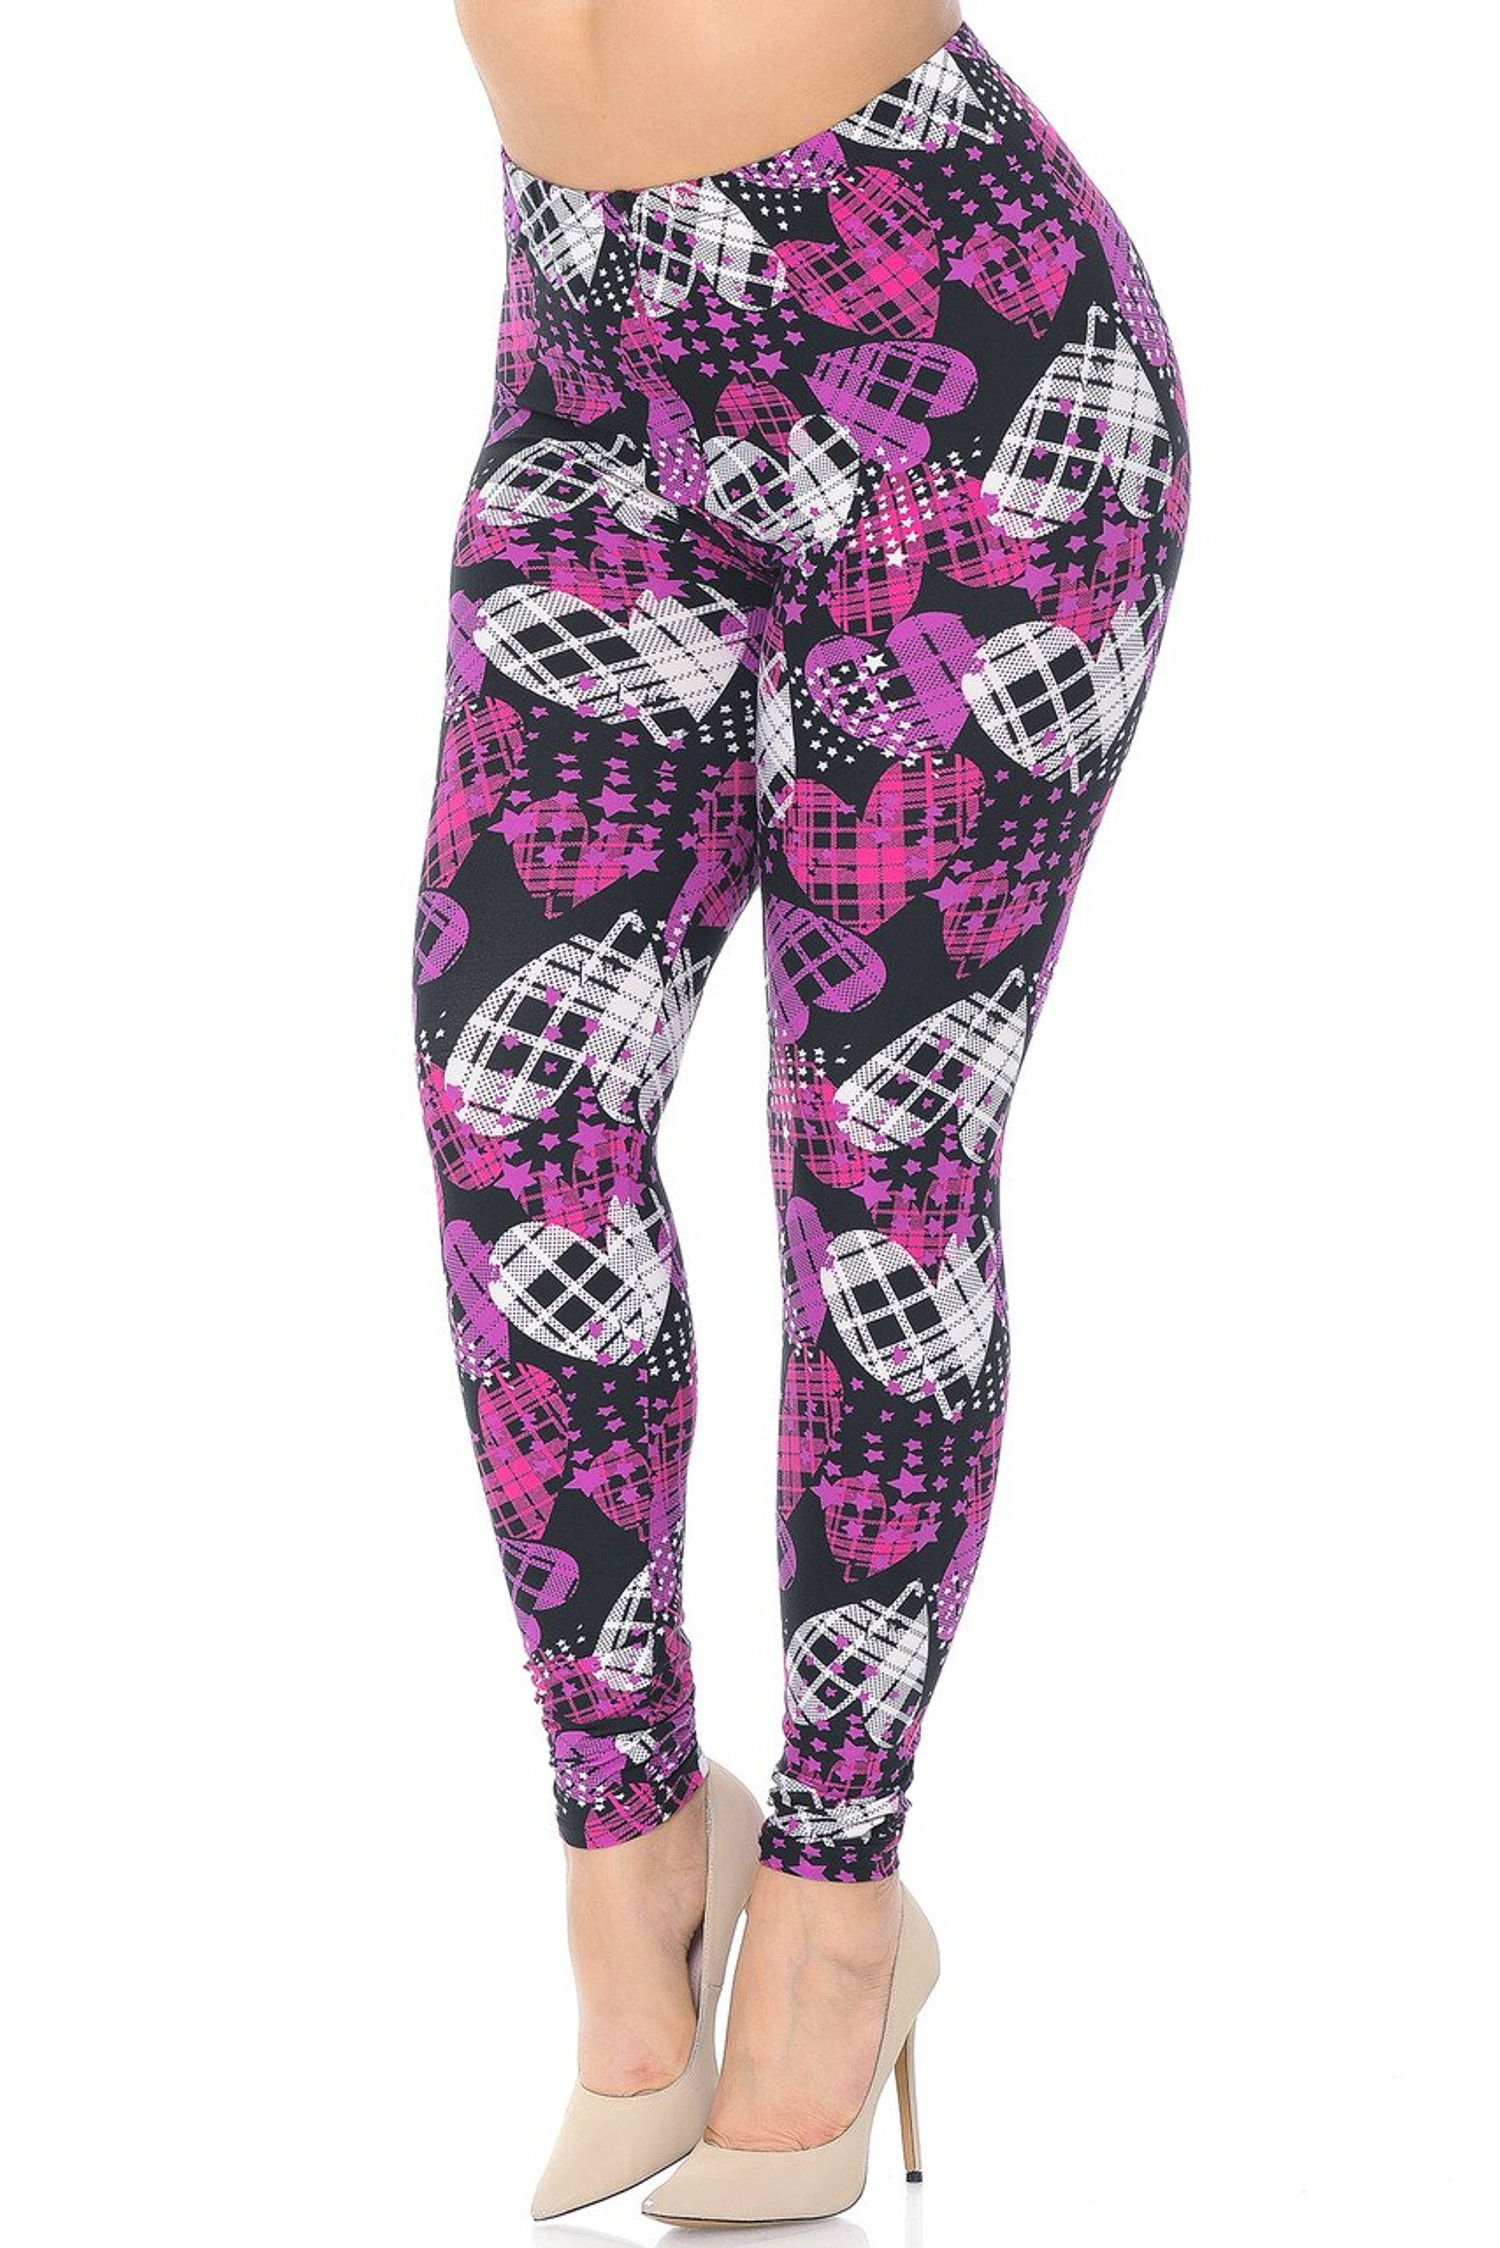 Buttery Soft Stars and Plaid Hearts Extra Plus Size Leggings - 3X-5X